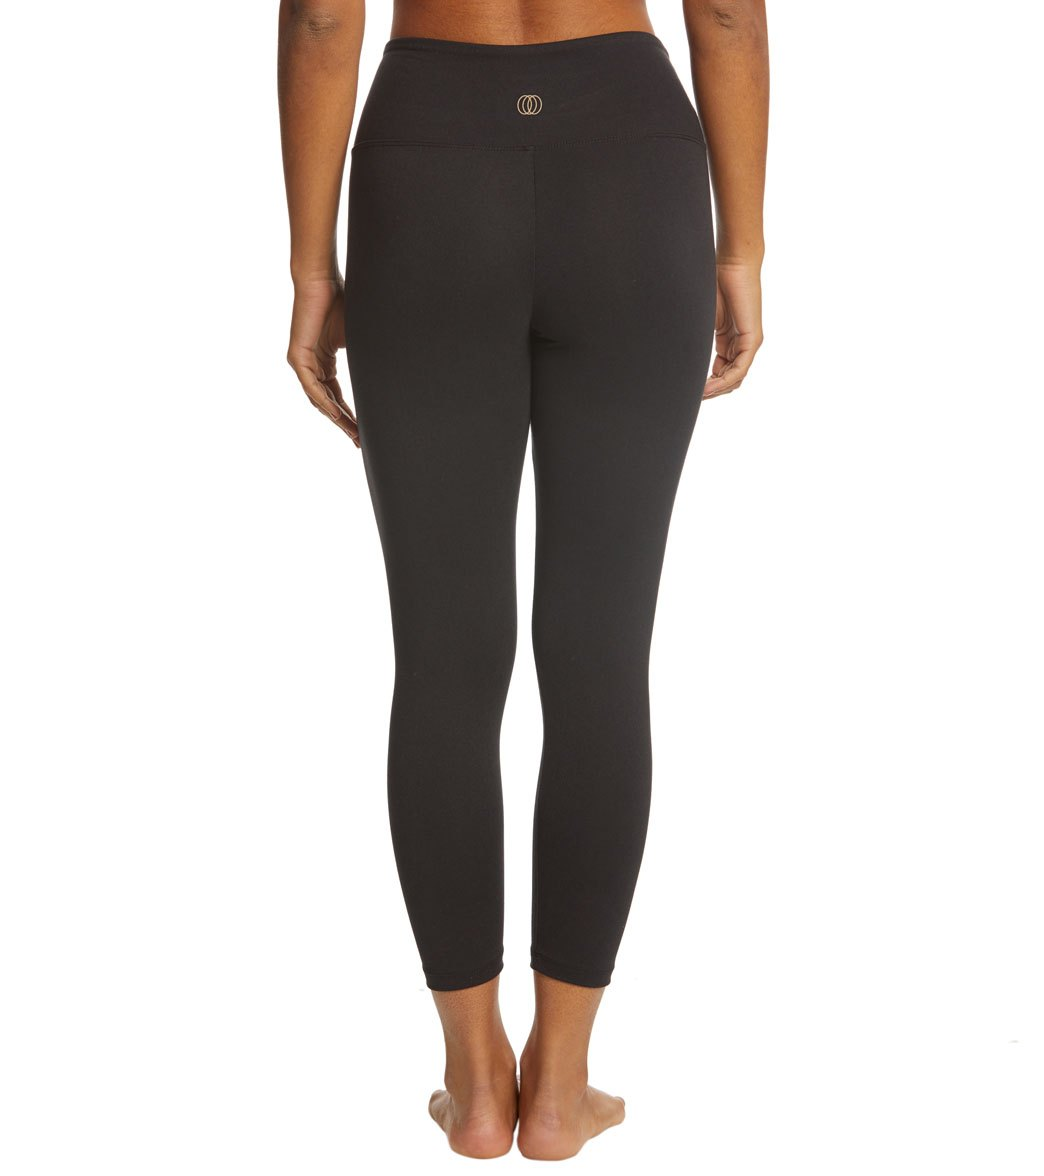 76cdbad326 Balance Collection Solid High Waisted Yoga Capris at YogaOutlet.com ...